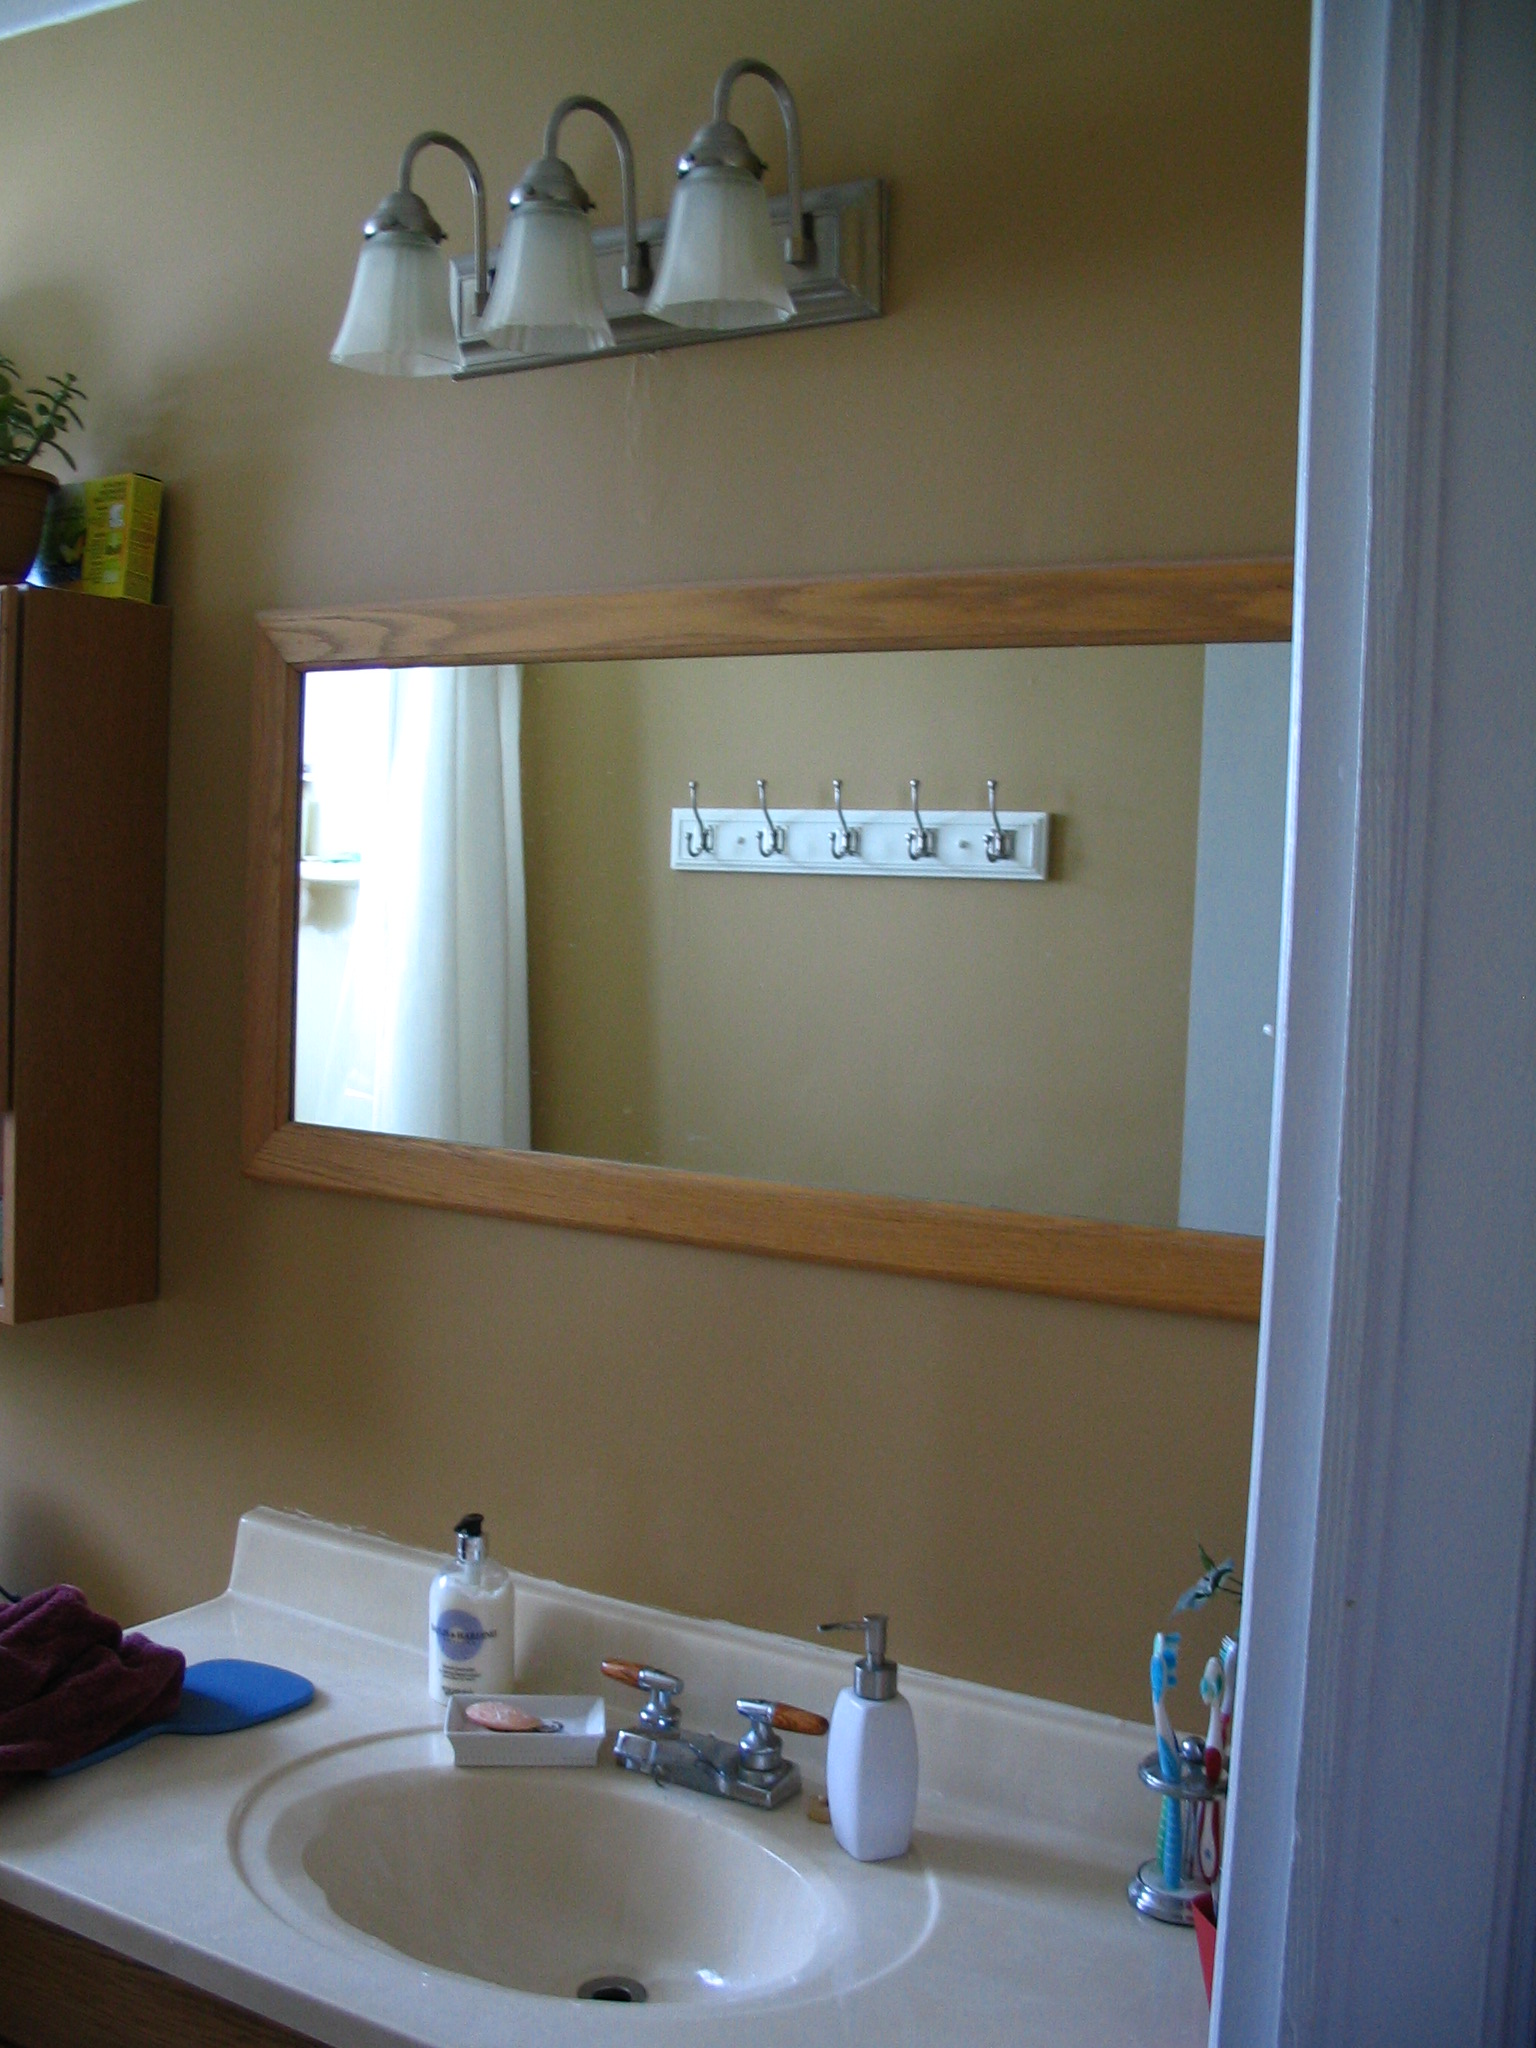 Bathroom Mirror Not Over Sink bathroom light off-center (mirror, sink, design, mirrors) - home